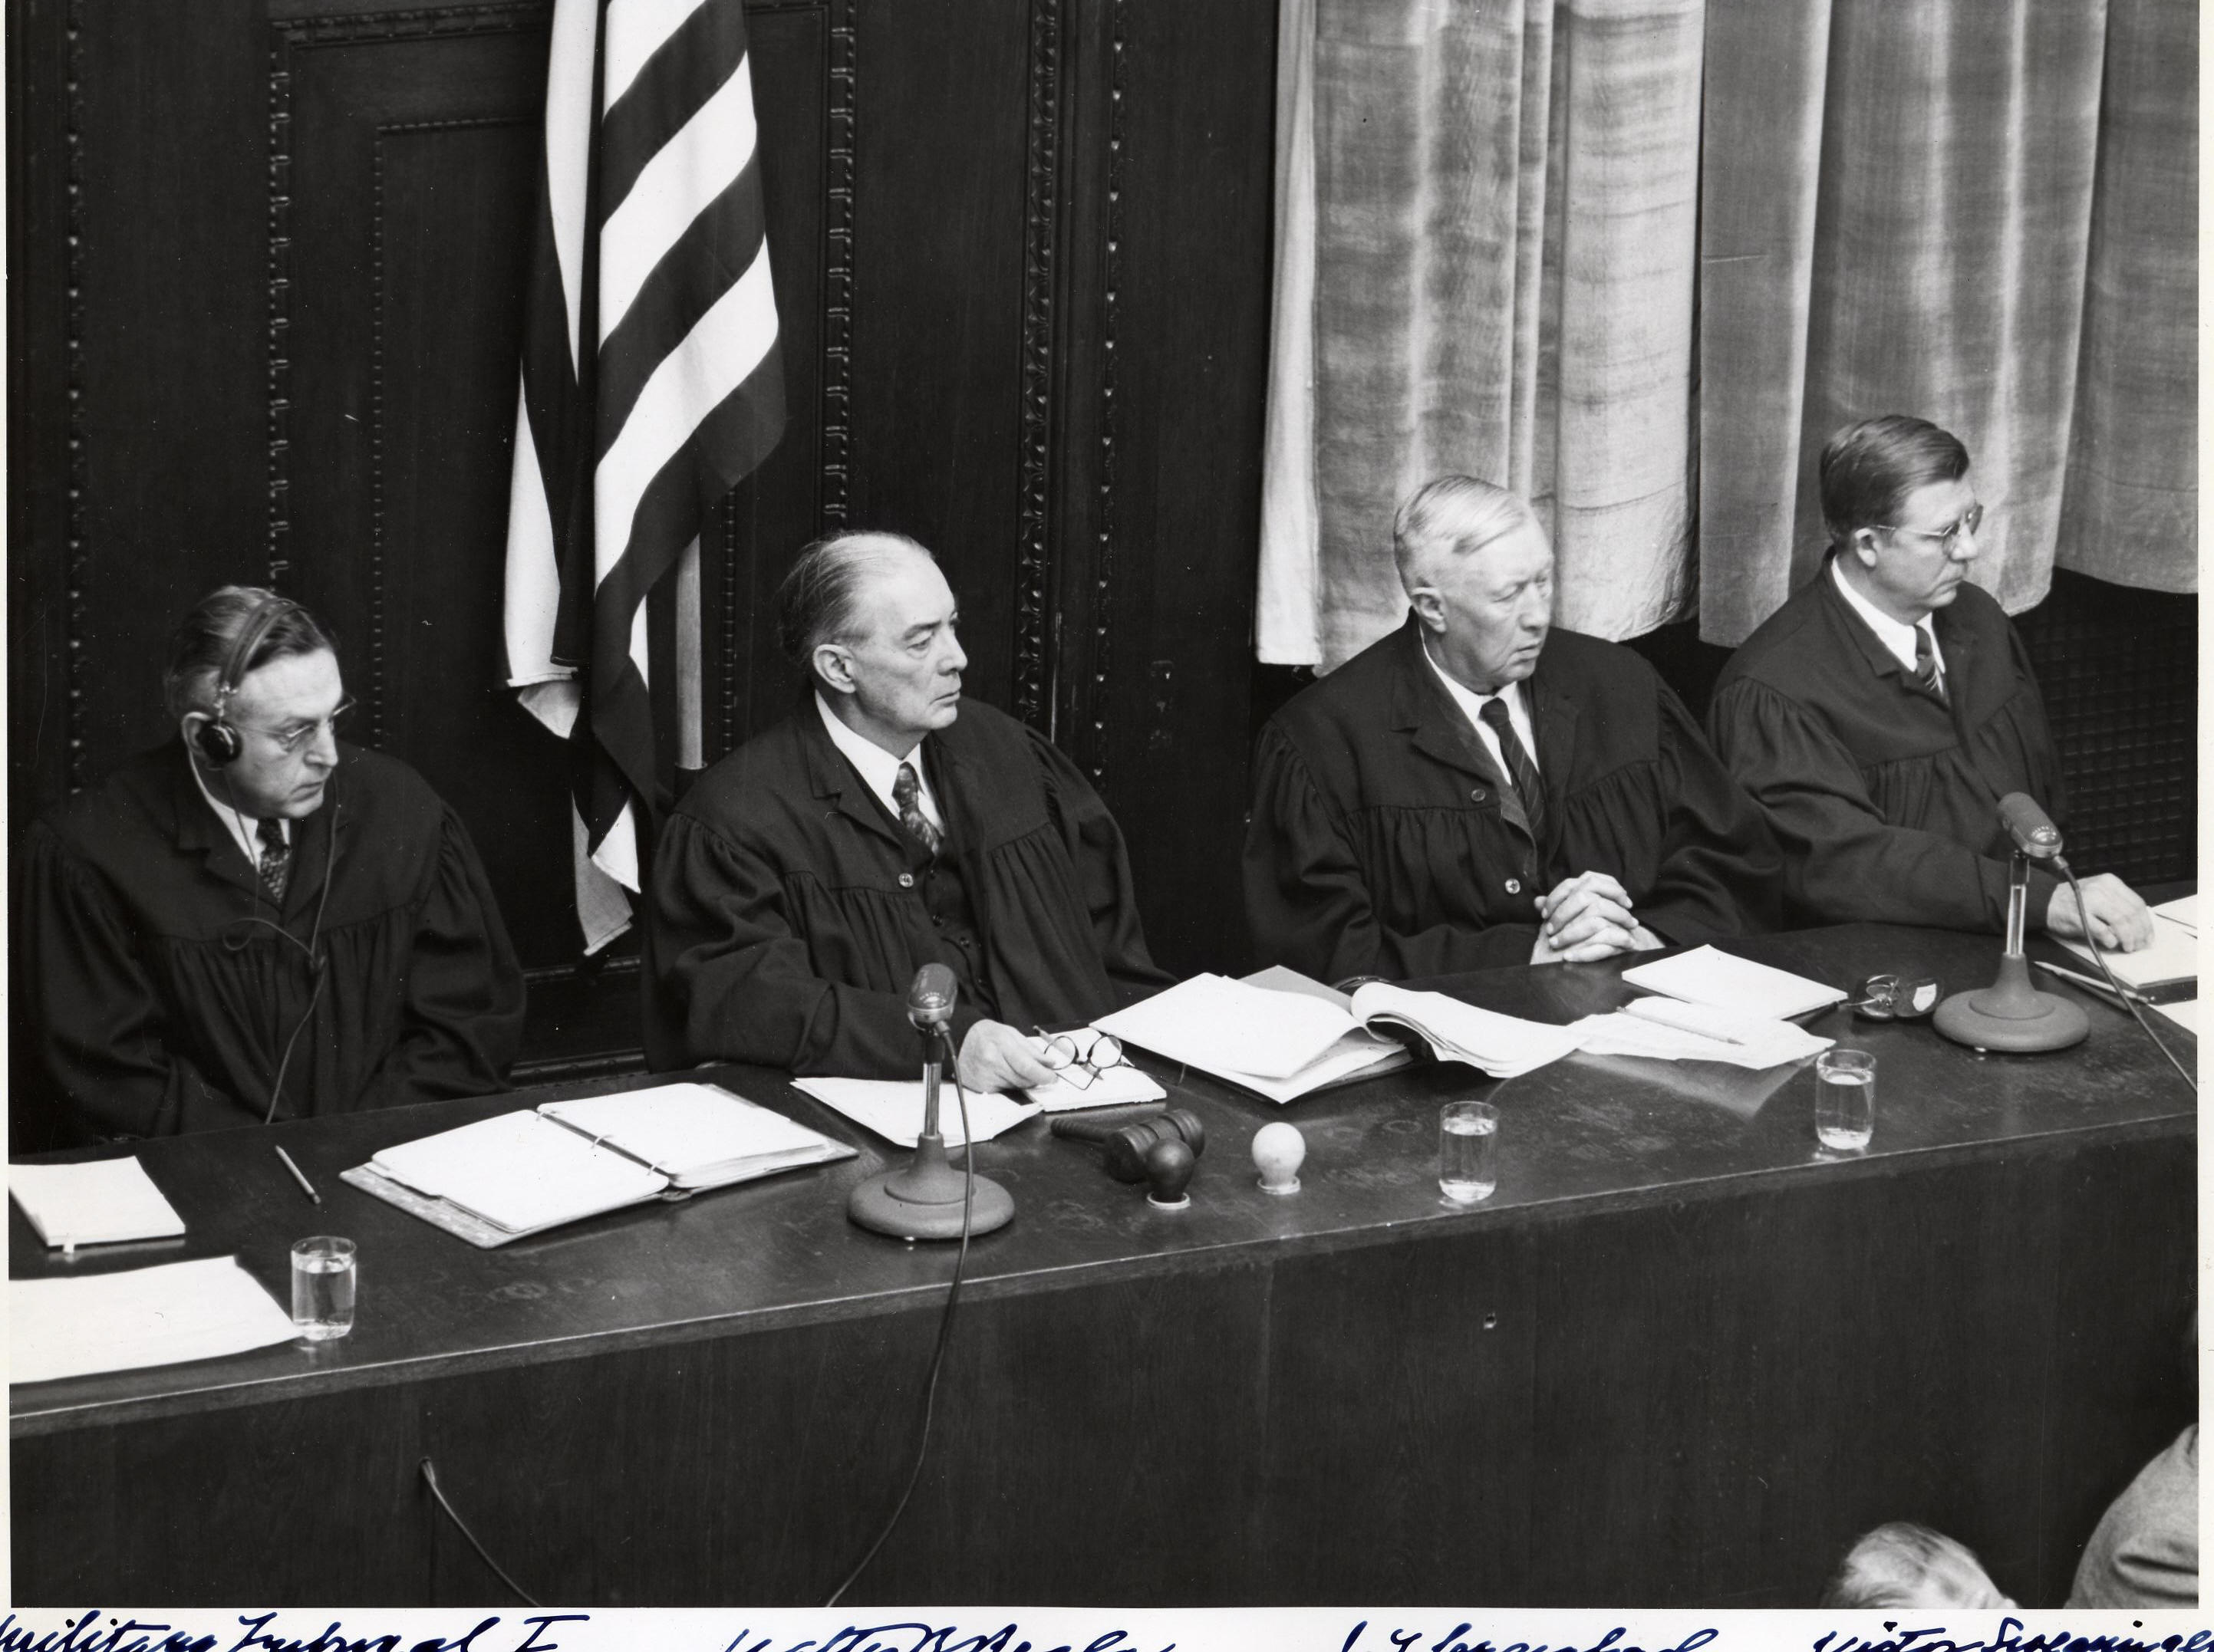 http://lib.law.washington.edu/images/Nuremberg%20Doctors%20Trial%20Judges.jpg